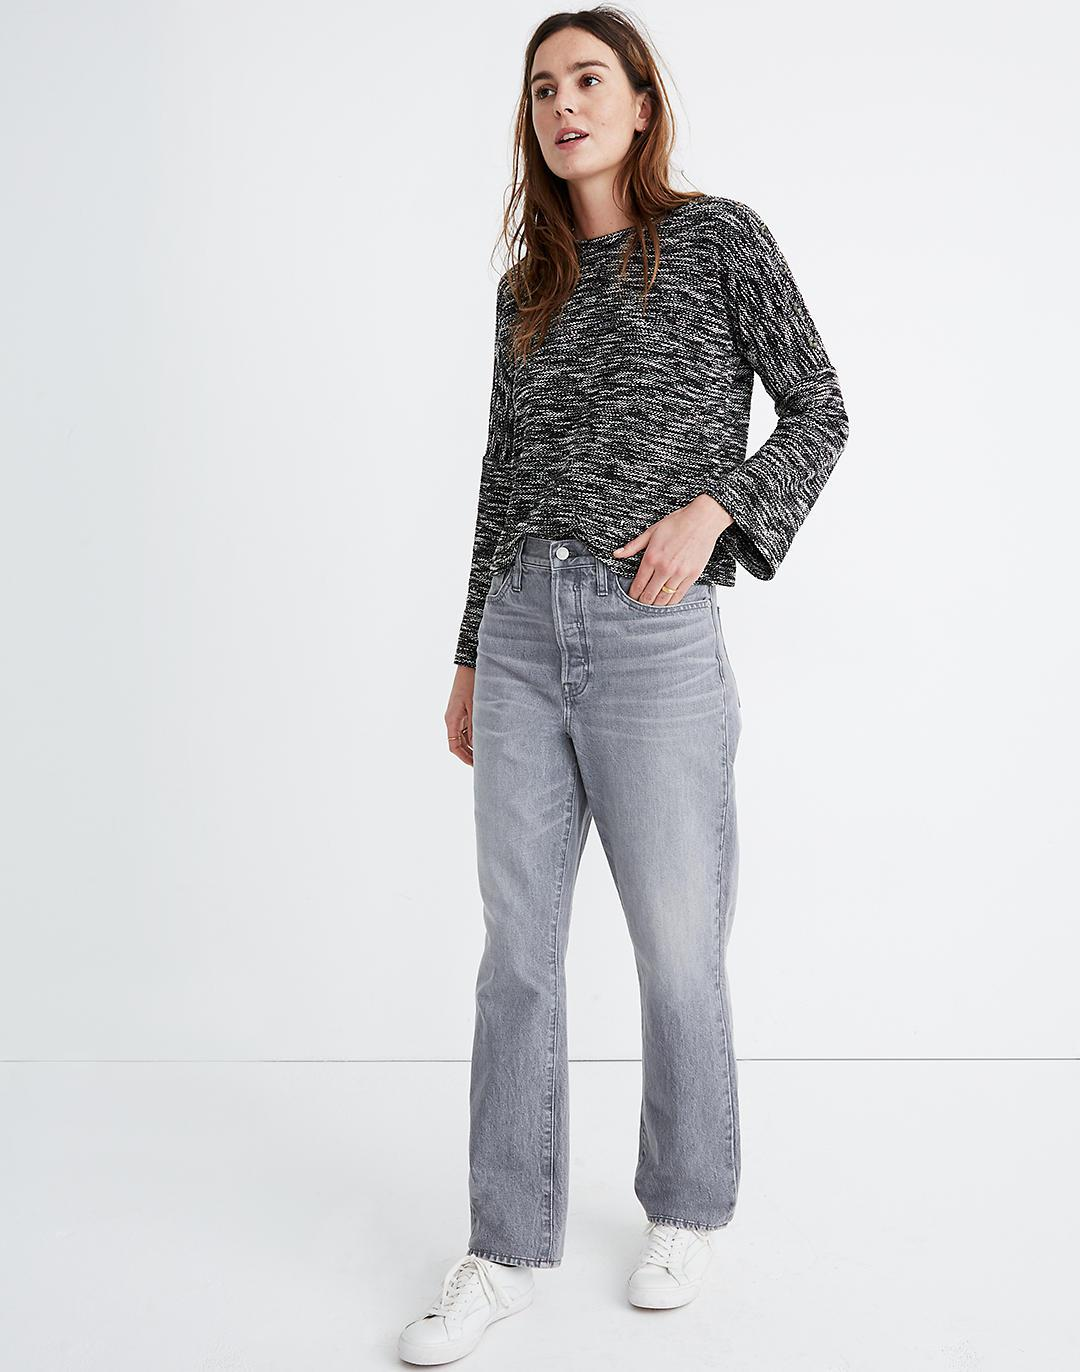 The Dadjean in Pale Grey